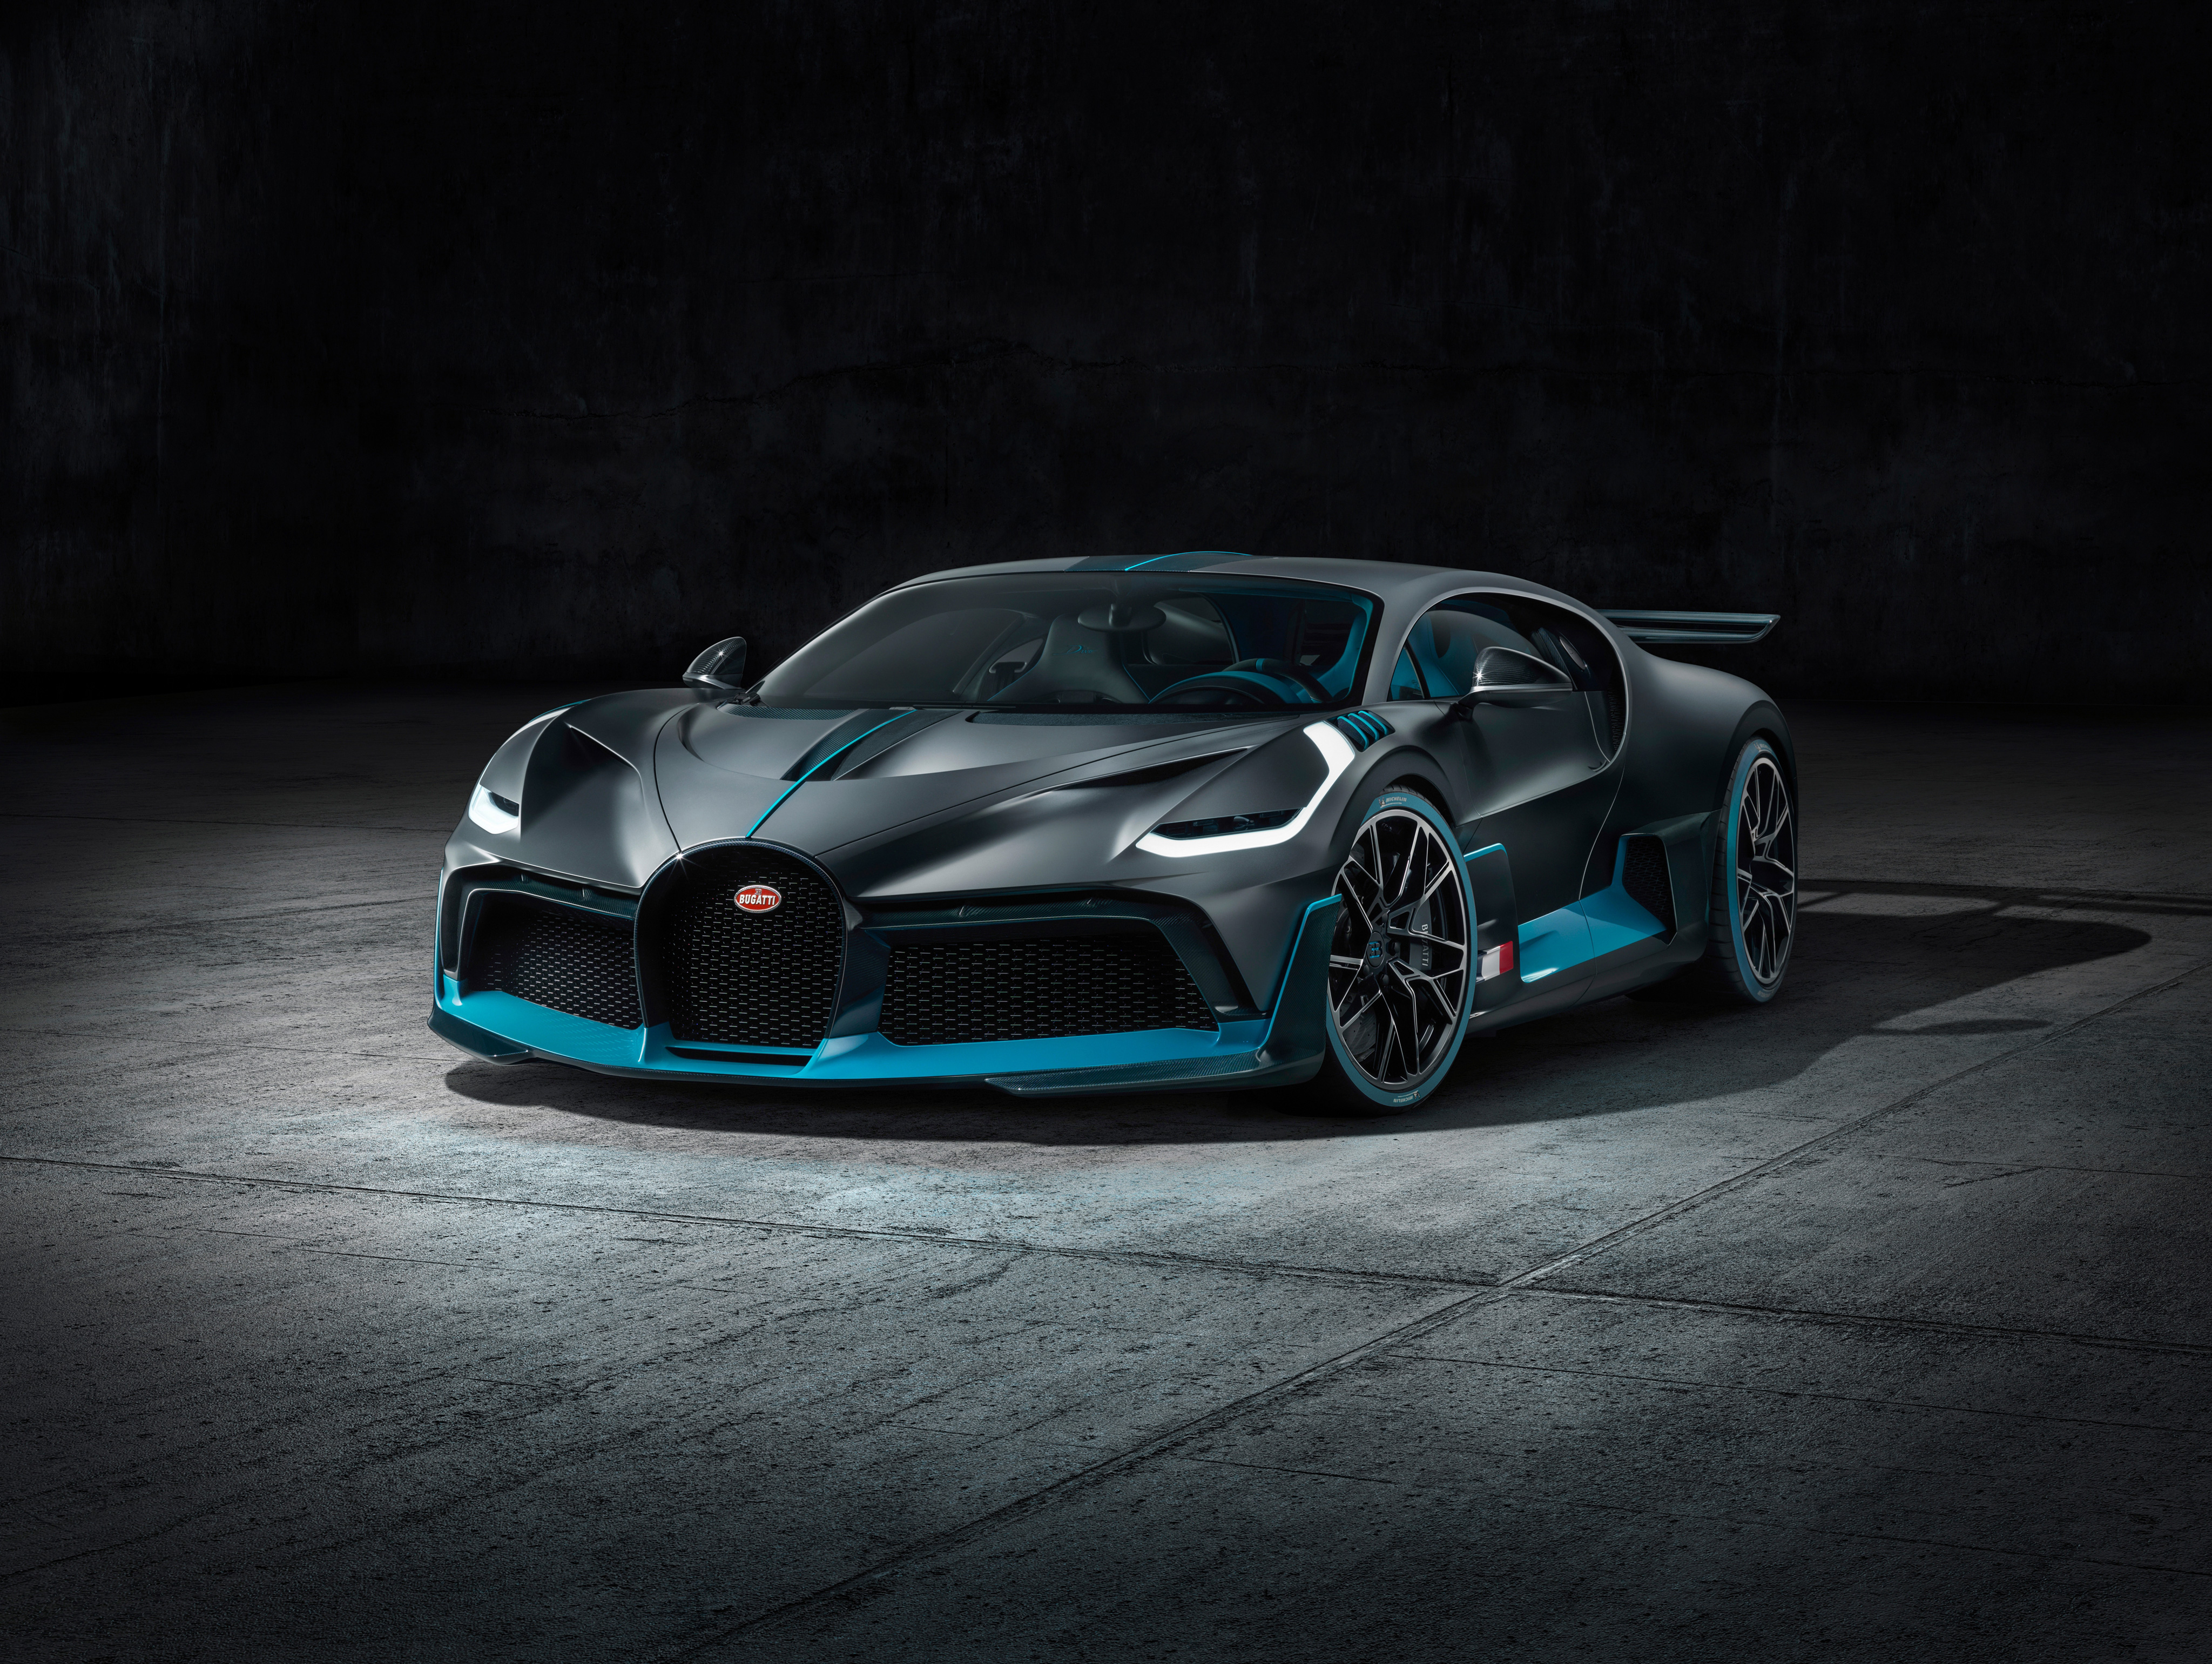 Bugatti divo 2018 4k hd cars 4k wallpapers images - 4k wallpaper for cars ...